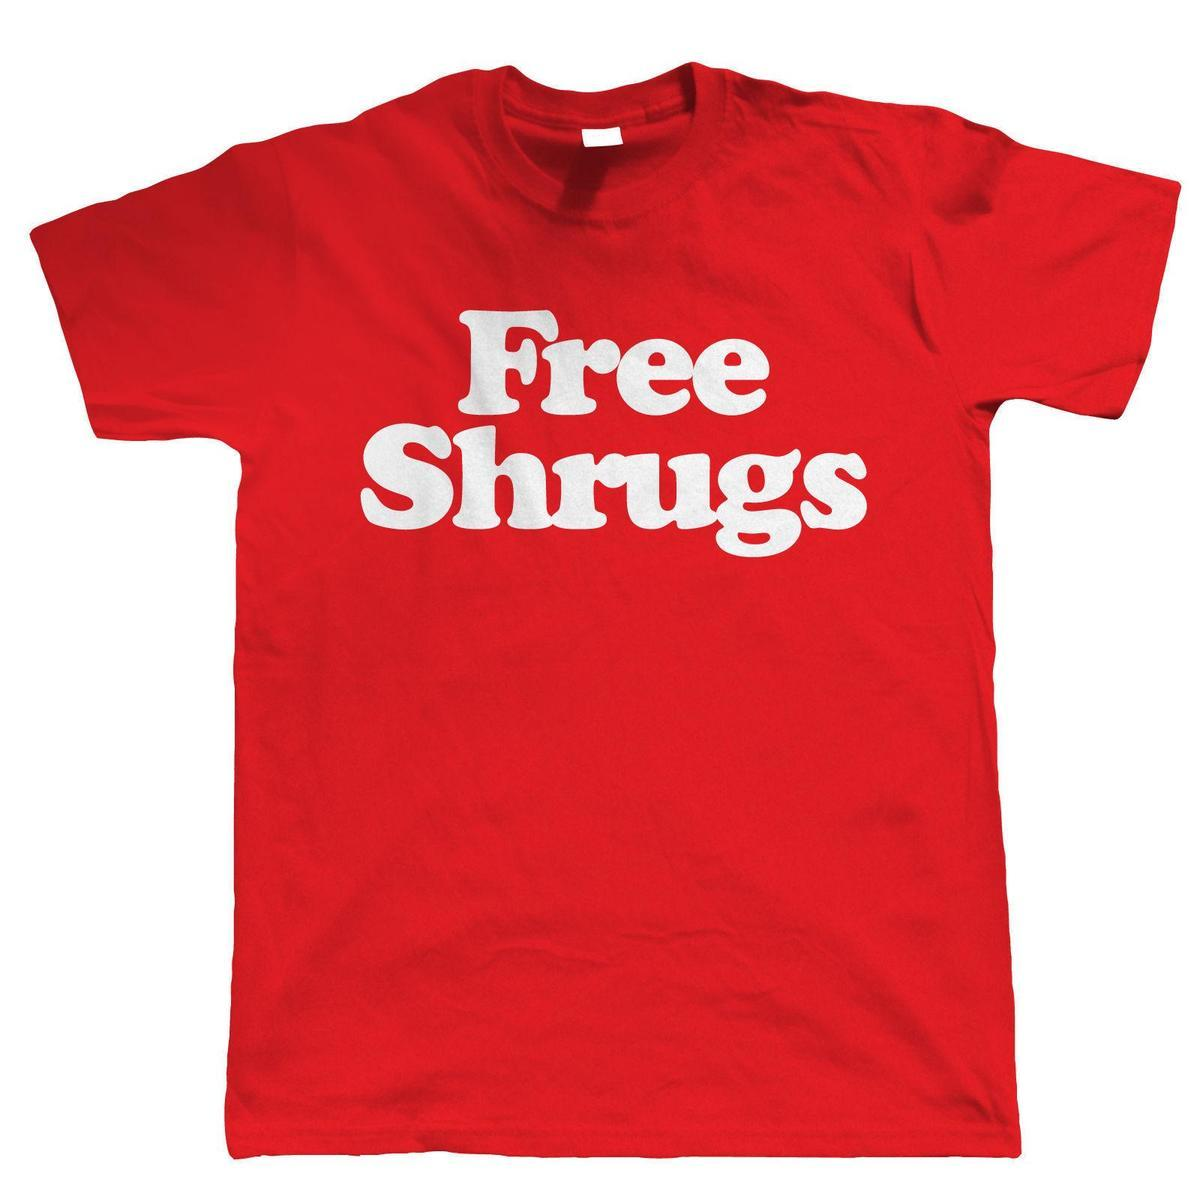 Free Shrugs Mens Funny Slogan T Shirt Gift For Him Dad Birthday T Shirt Slogans Dirty T Shirts From Liguo Dhgate Com